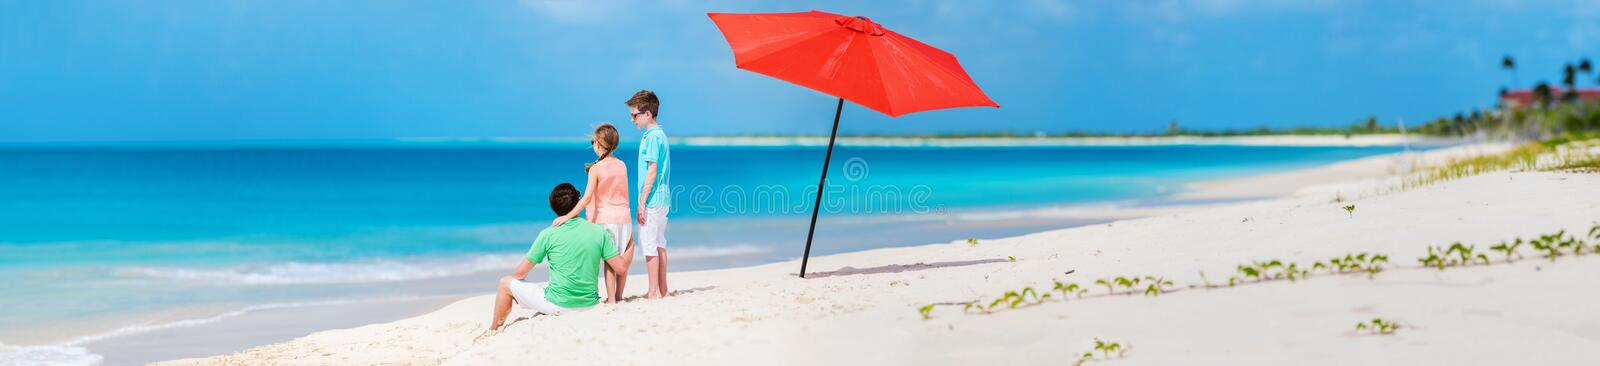 Father with kids at beach. Back view of father and kids enjoying beach vacation. Panorama perfect for banner stock image